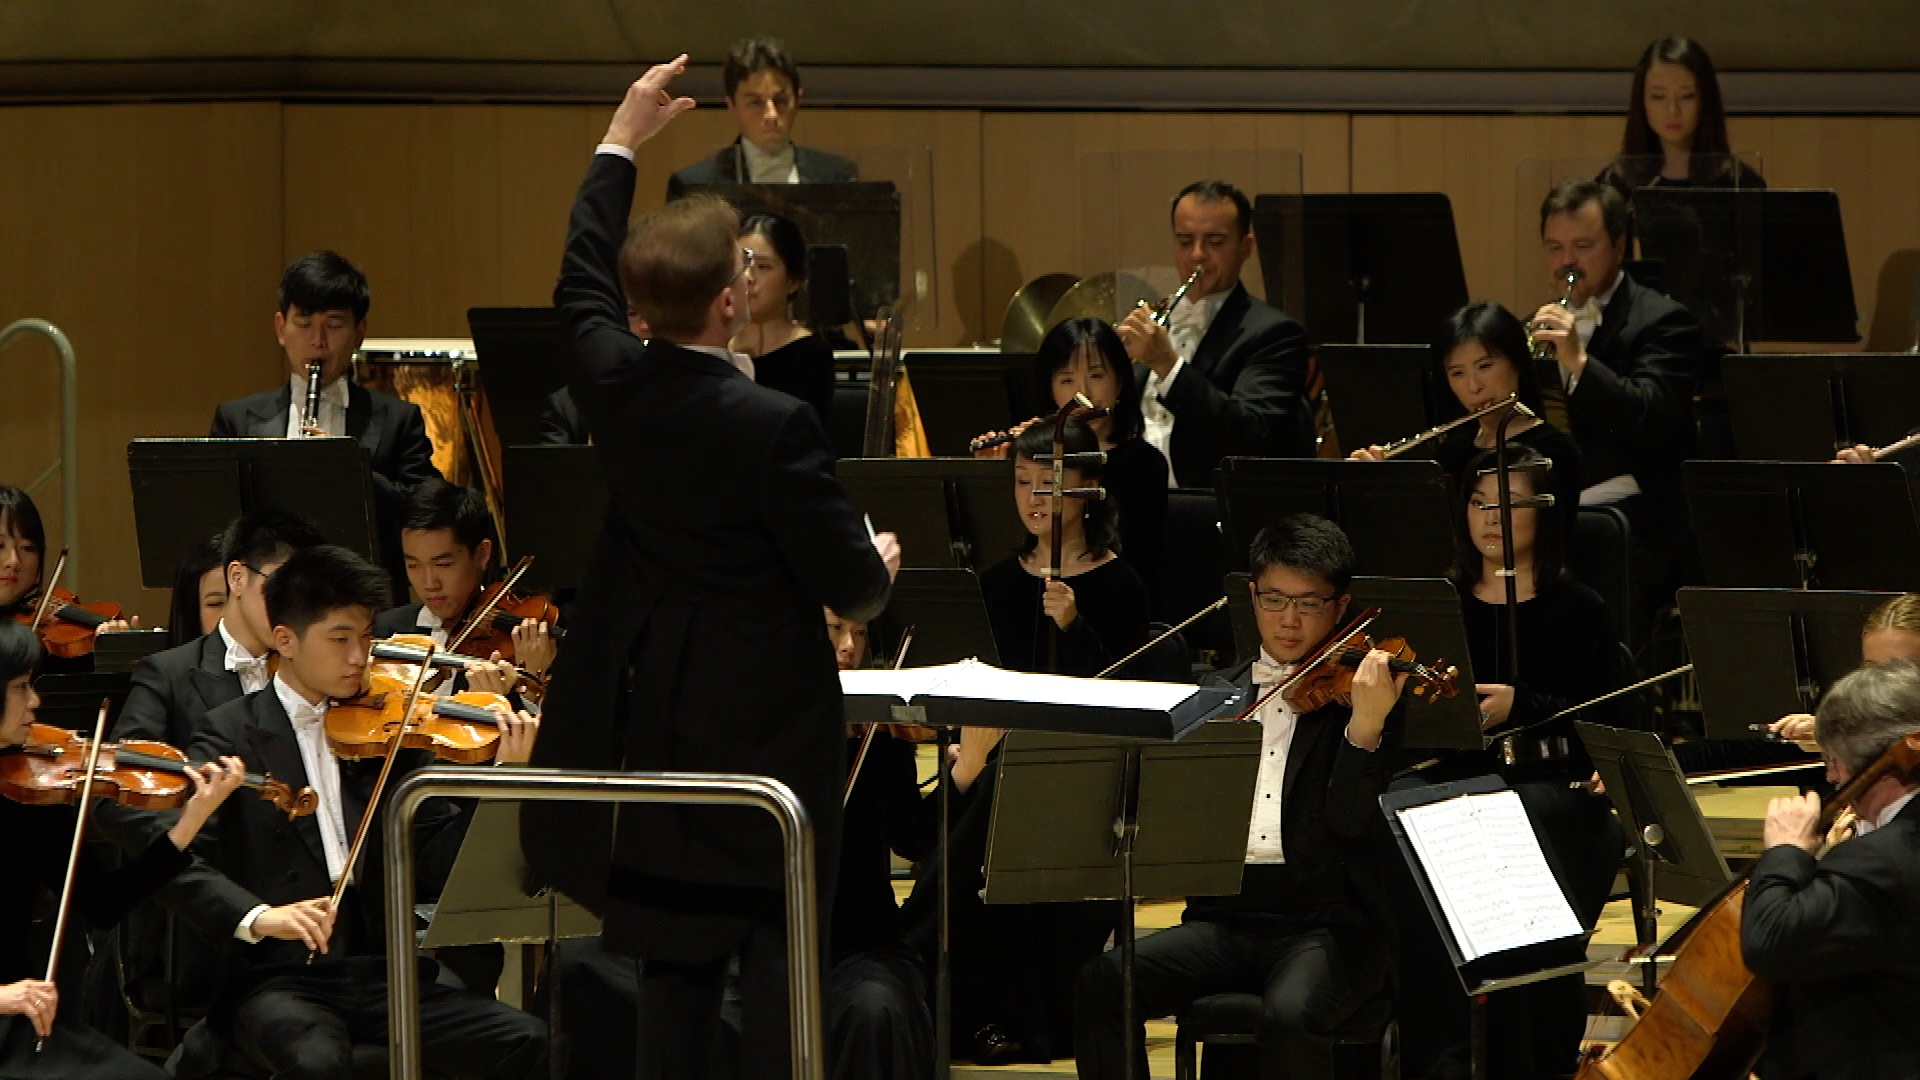 Shen Yun Symphony Orchestra 2019 Comes to New York This Weekend